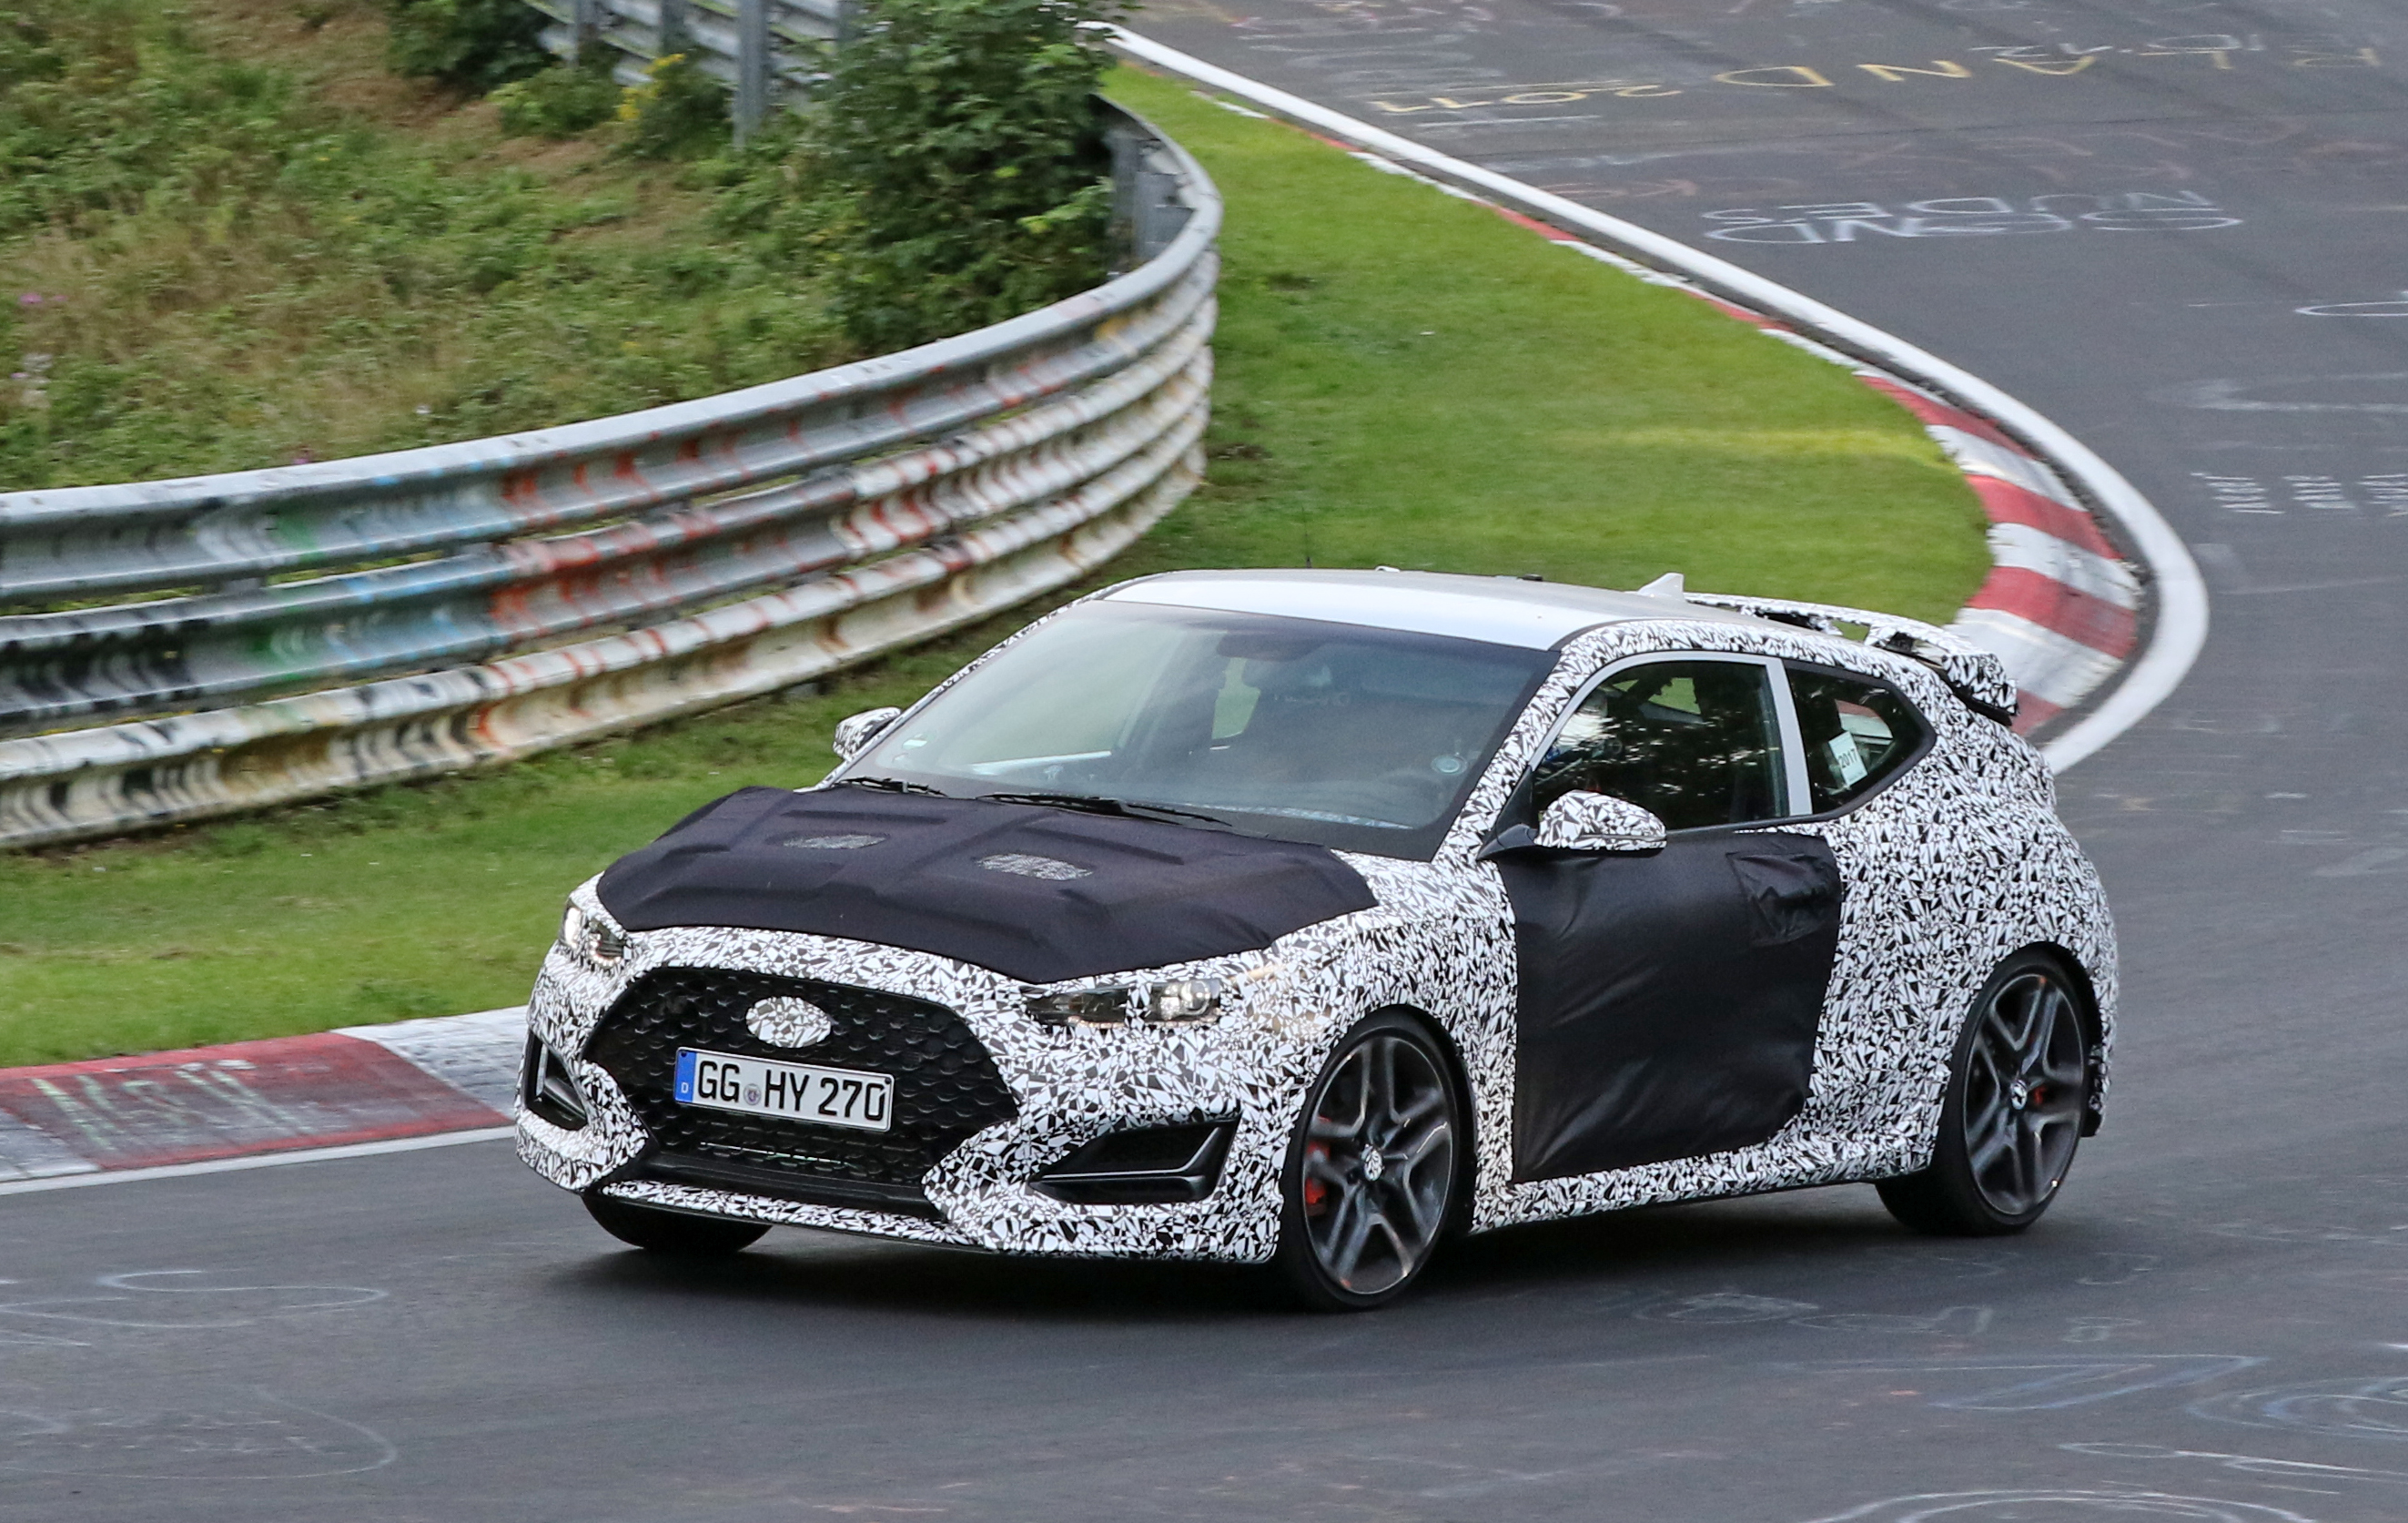 dct canadian turbo speed reviews veloster hyundai auto review canada